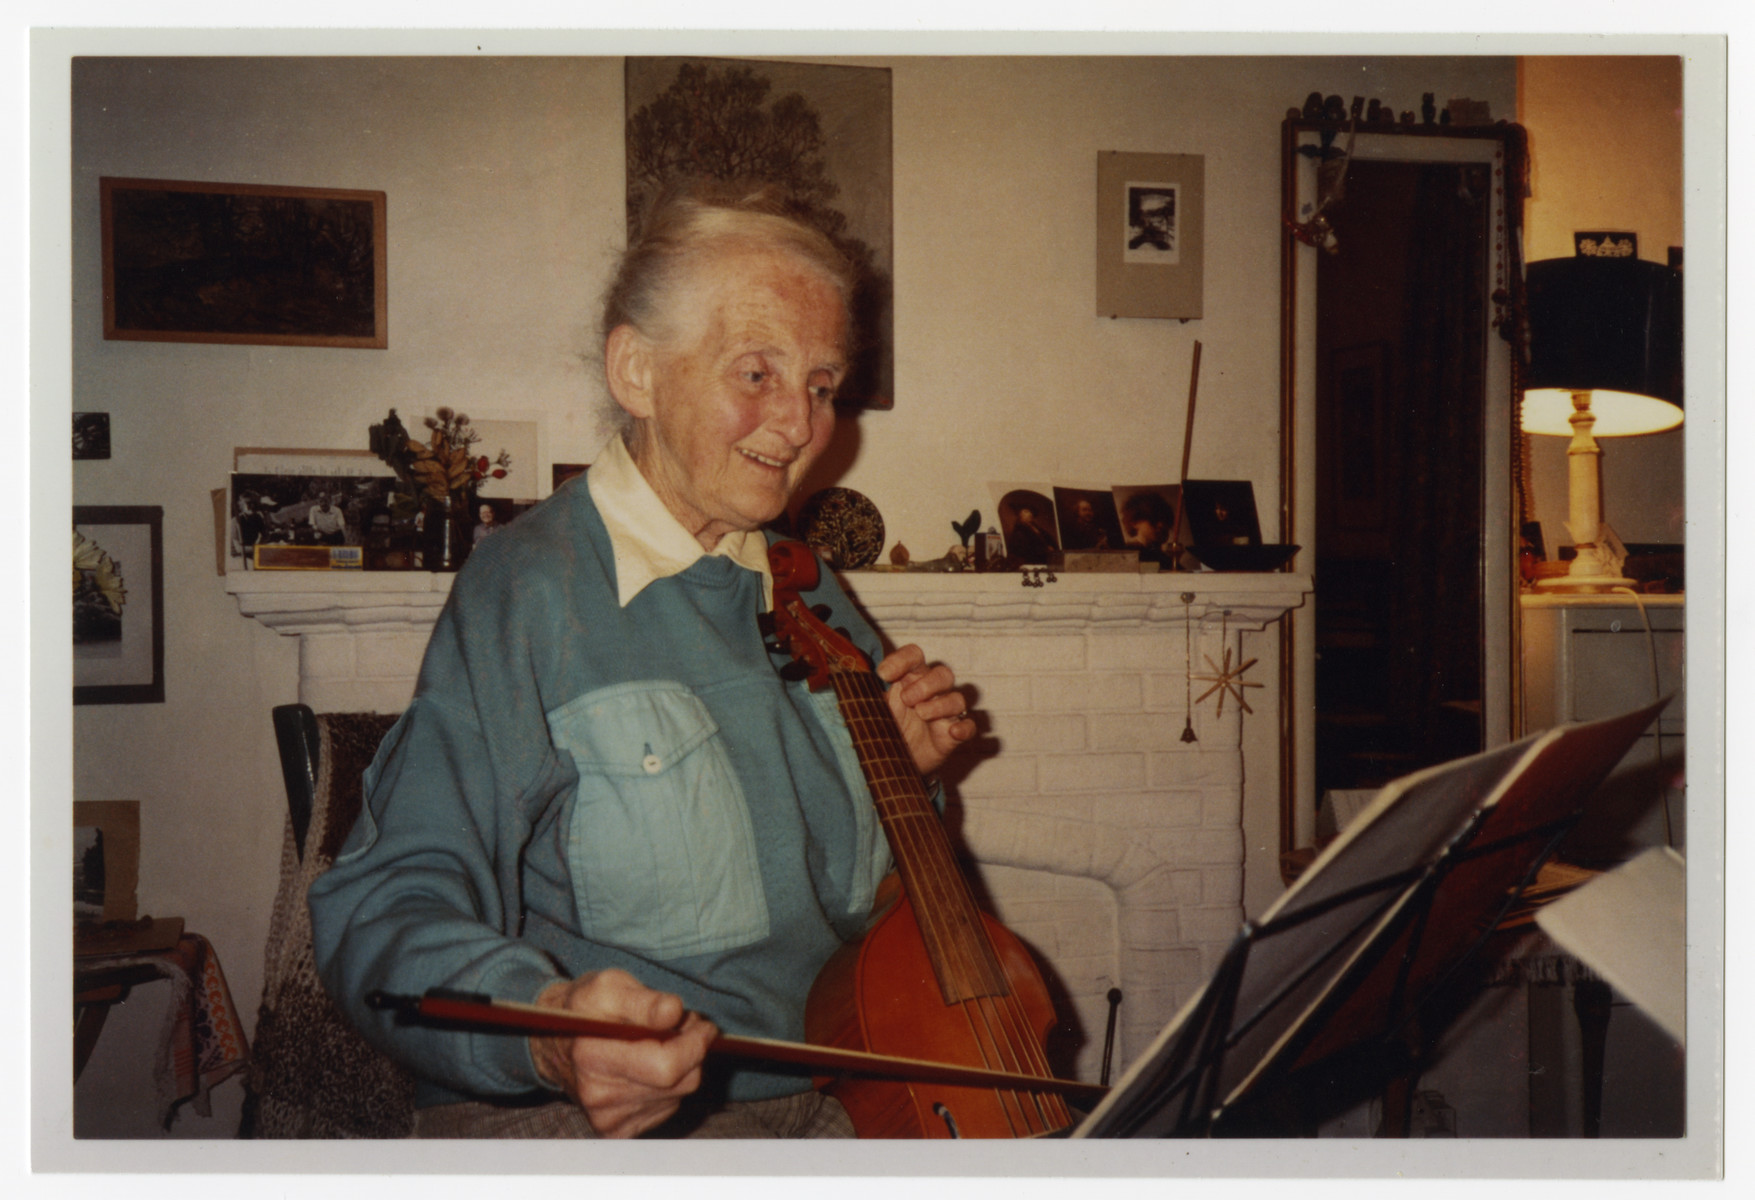 Suse Tieze, one of the care givers in Weir Courtney, plays a violin cello.